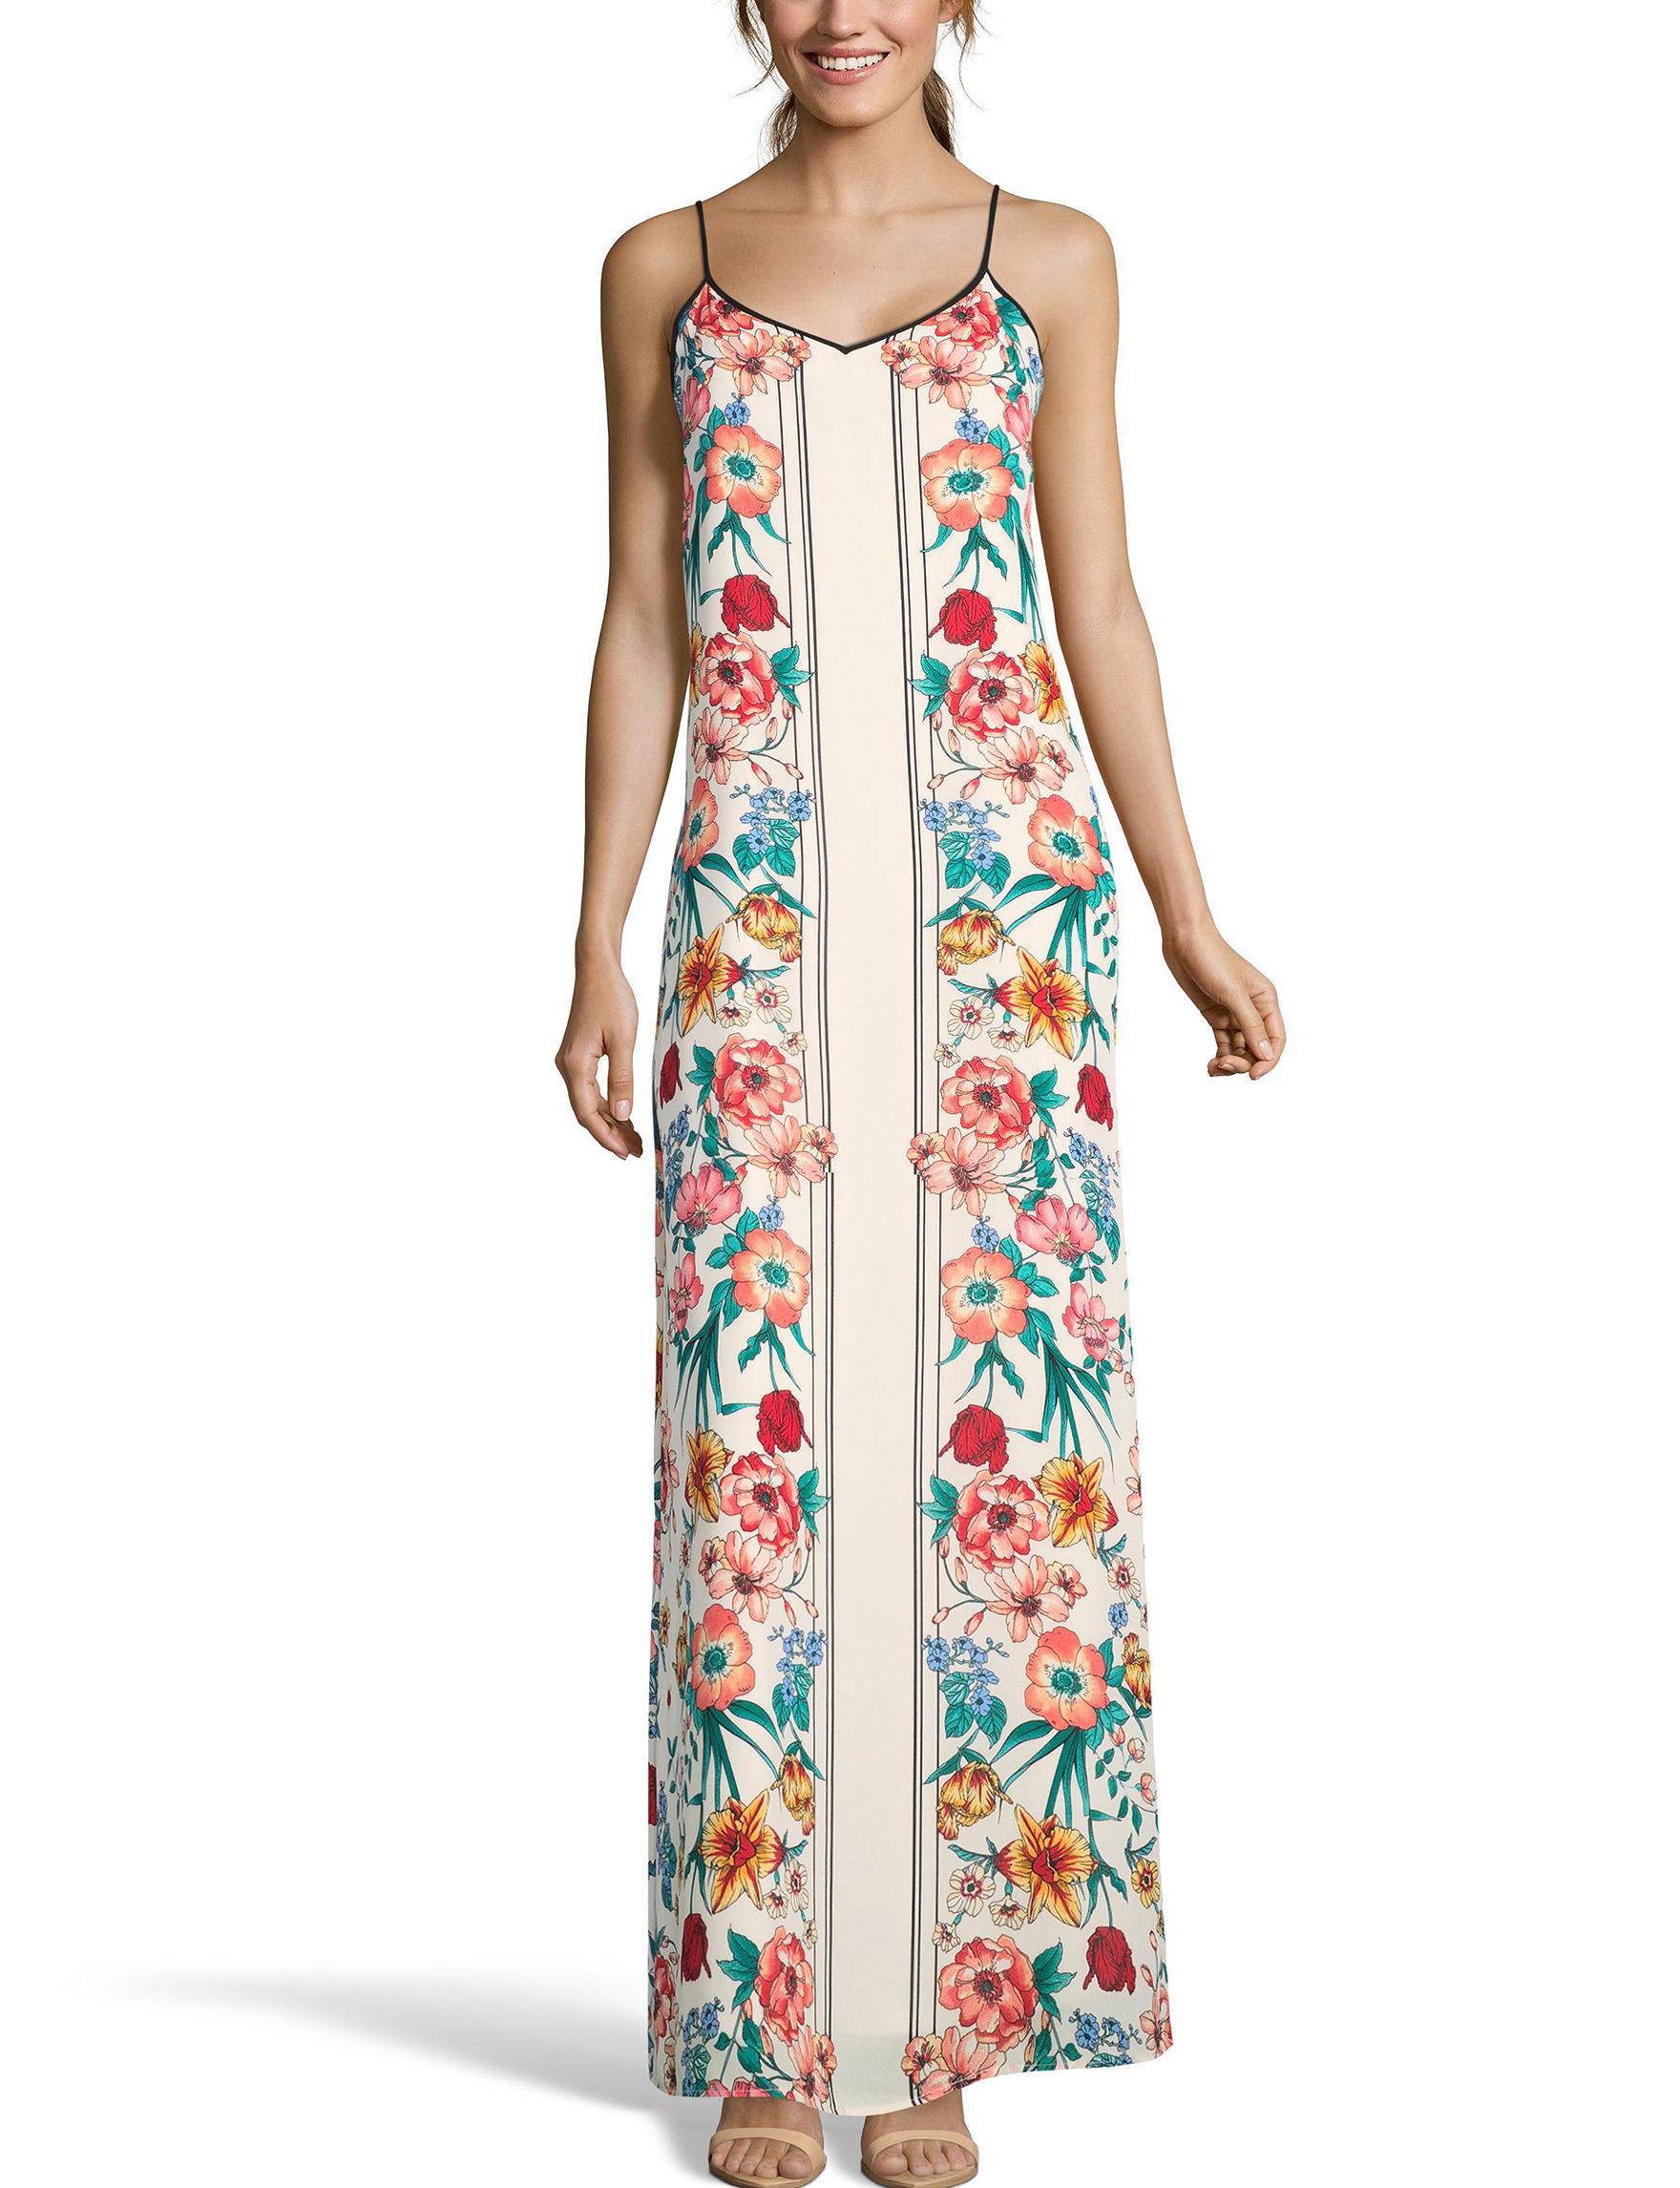 Nicole Miller Ivory Floral Everyday & Casual